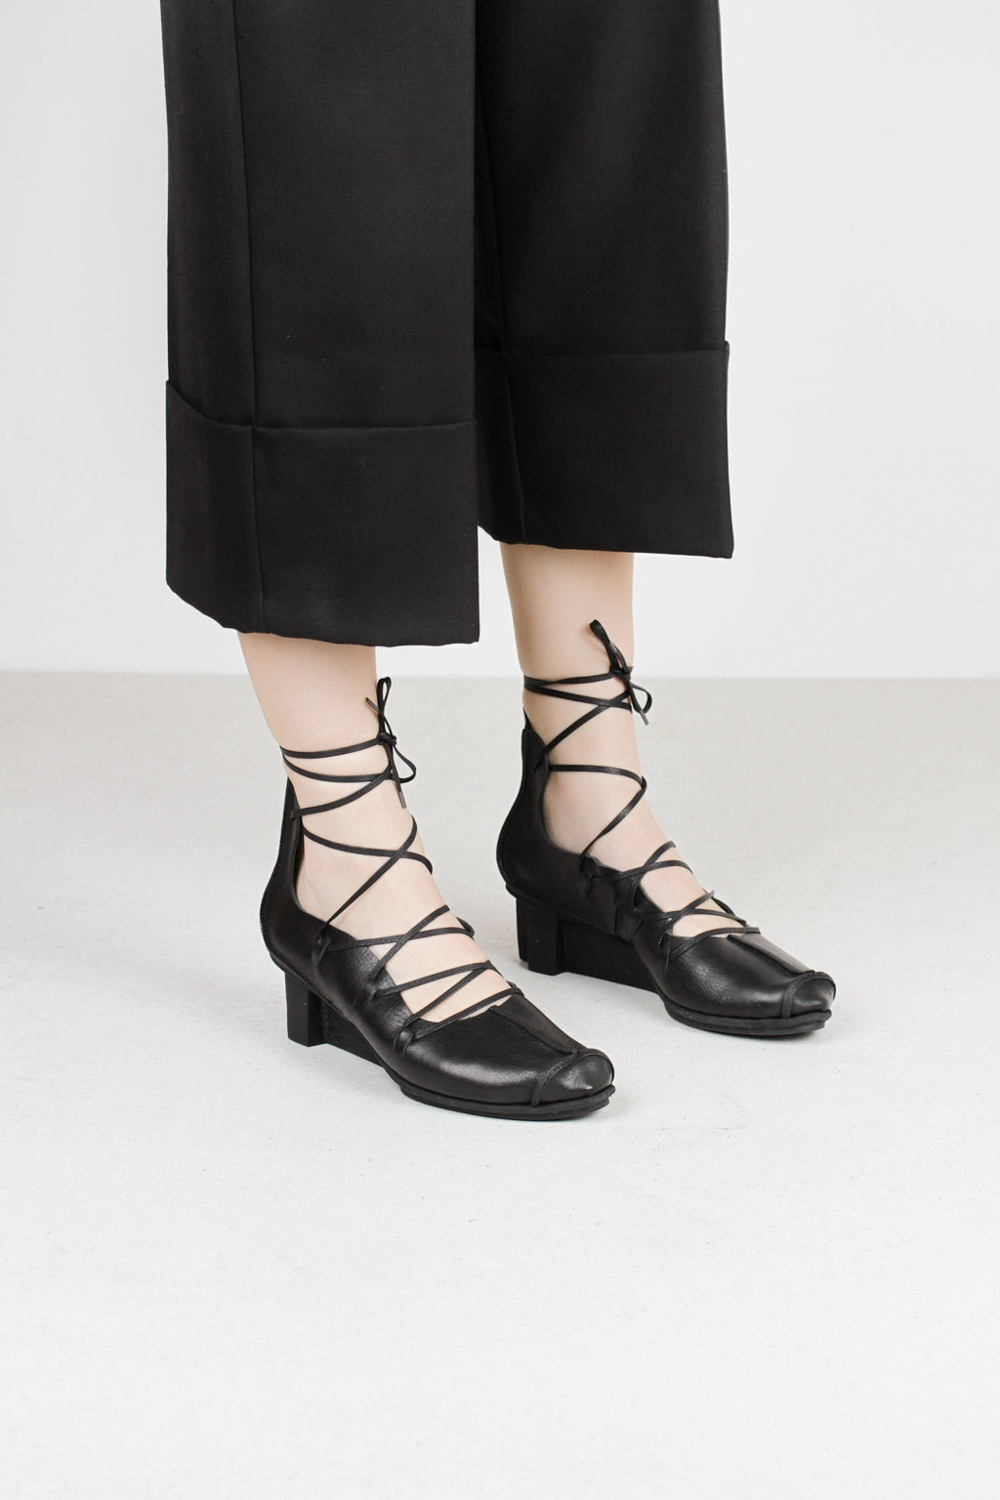 Trippen blade f blk waw xo blk leather sandals